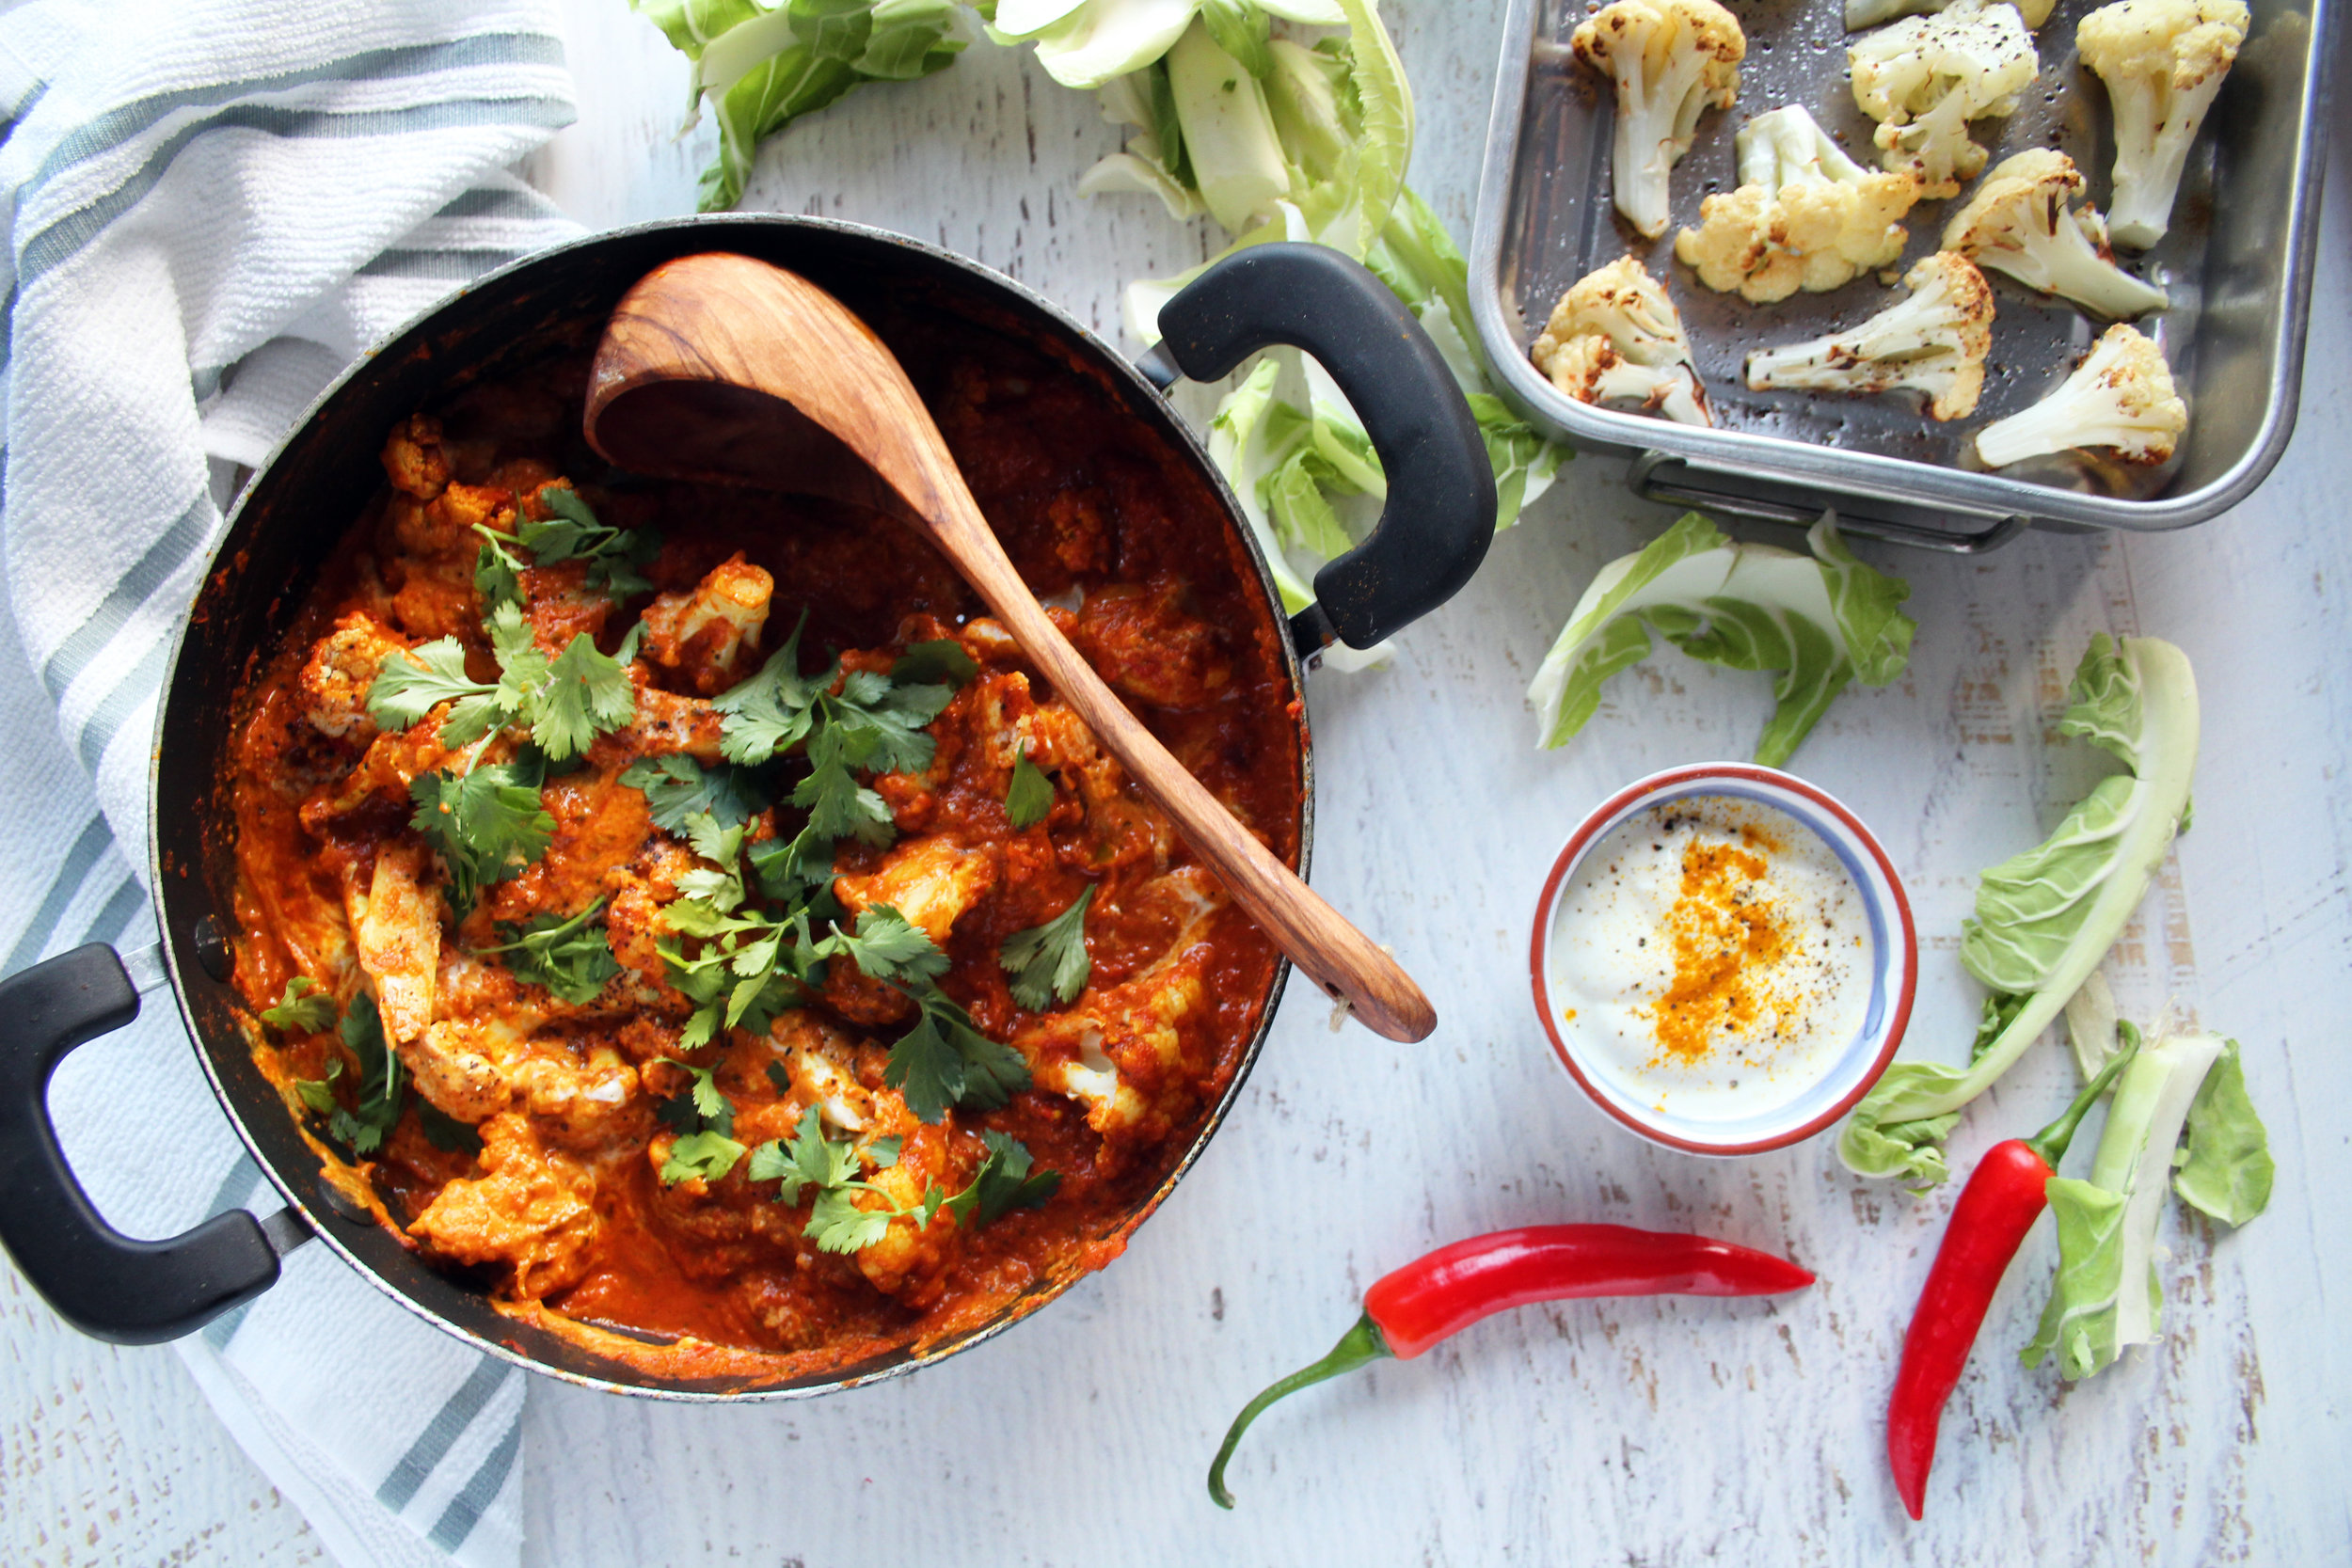 Cauliflower curry recipe | The Flourishing Pantry | healthy eating for entrepreneurs